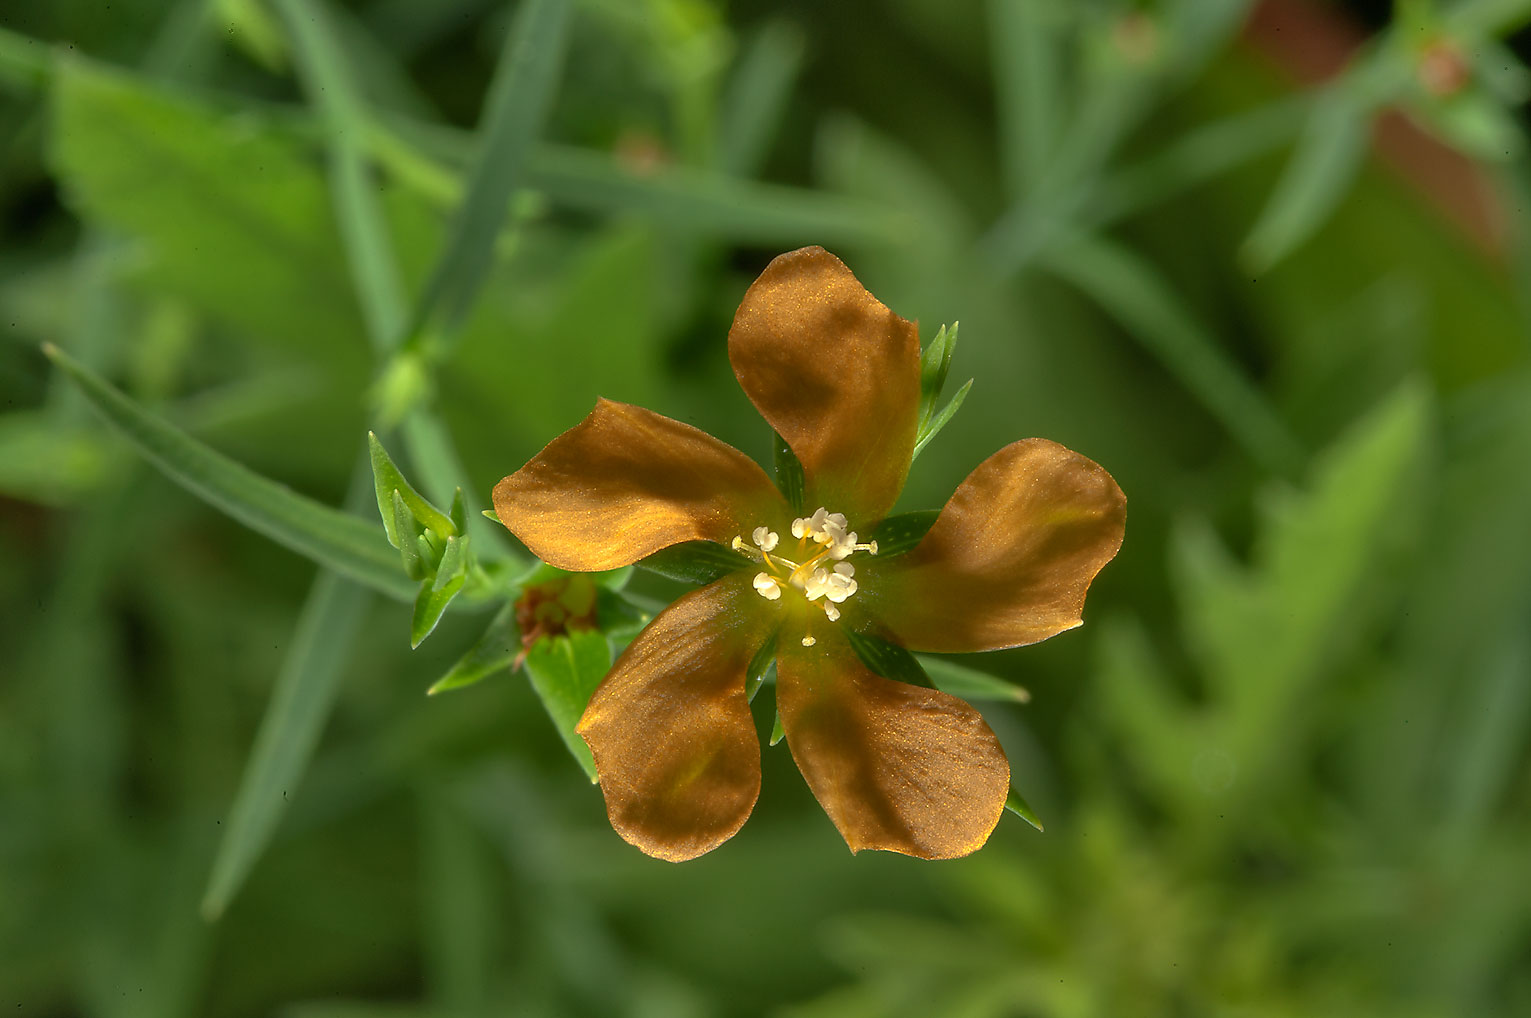 Flower of Nits-and-lice (Hypericum drummondii) in Lick Creek Park. College Station, Texas